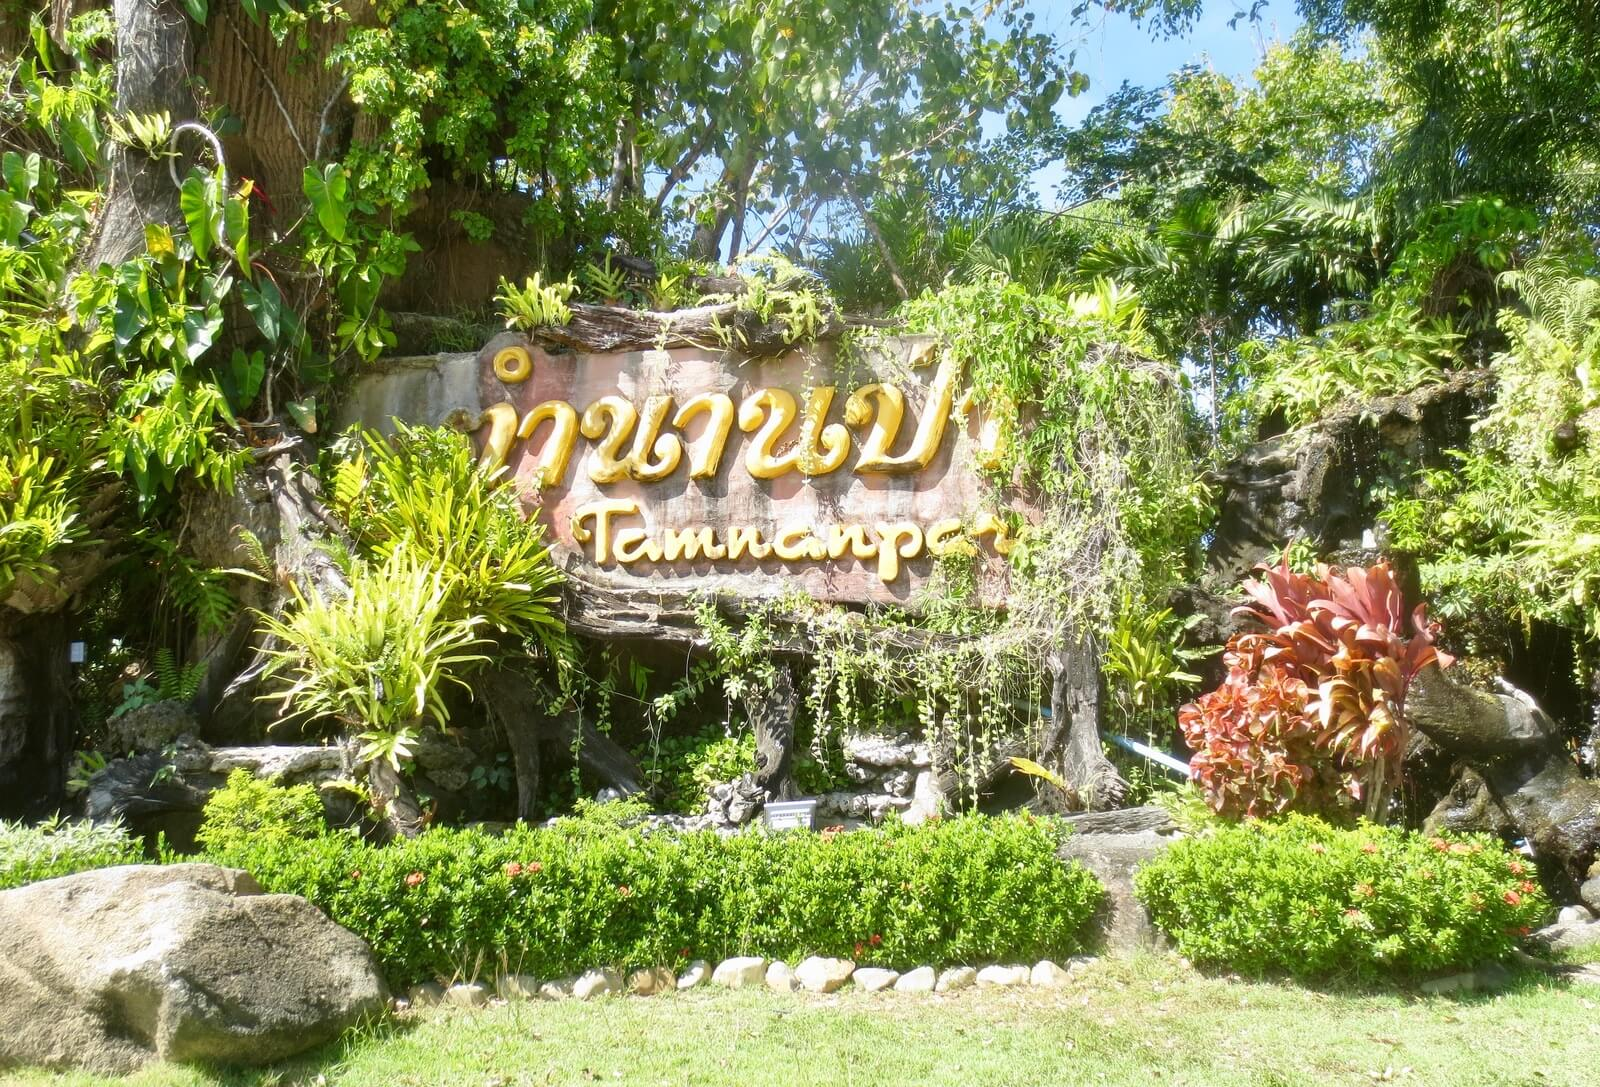 Tamnanpar in Rayong province, Thailand